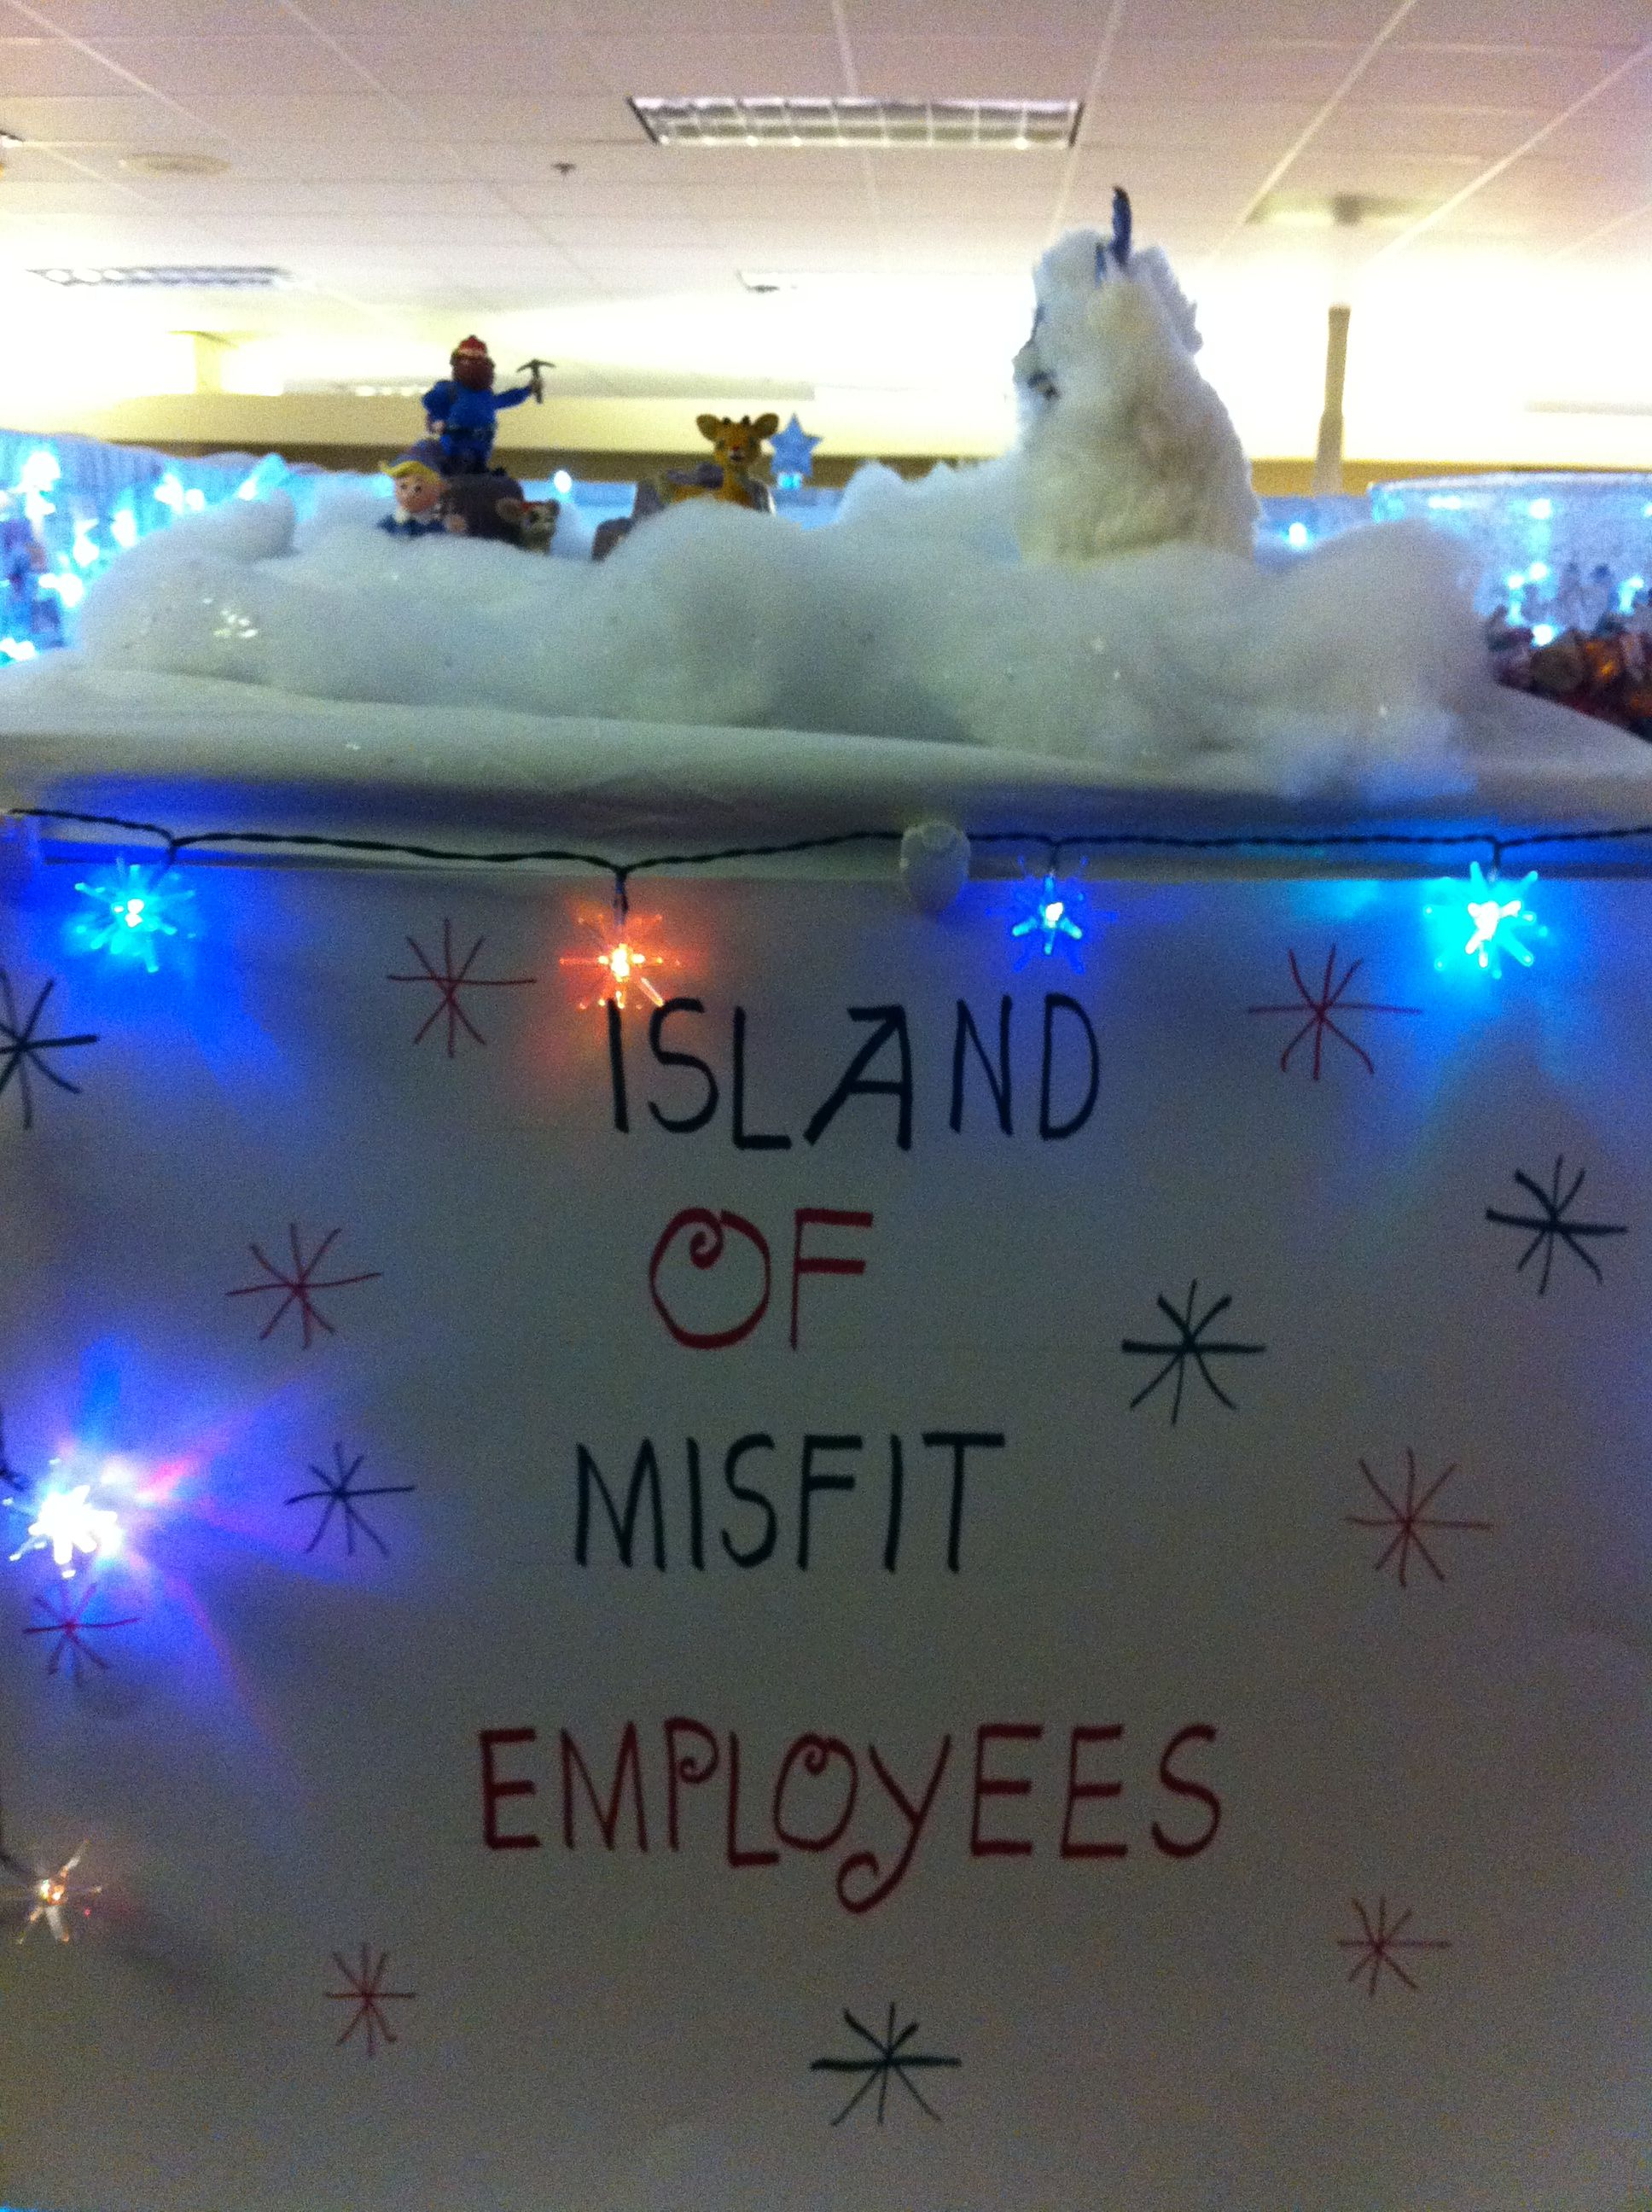 office christmas themes. Island Of Misfit Employees Christmas Cubicle Office Themes